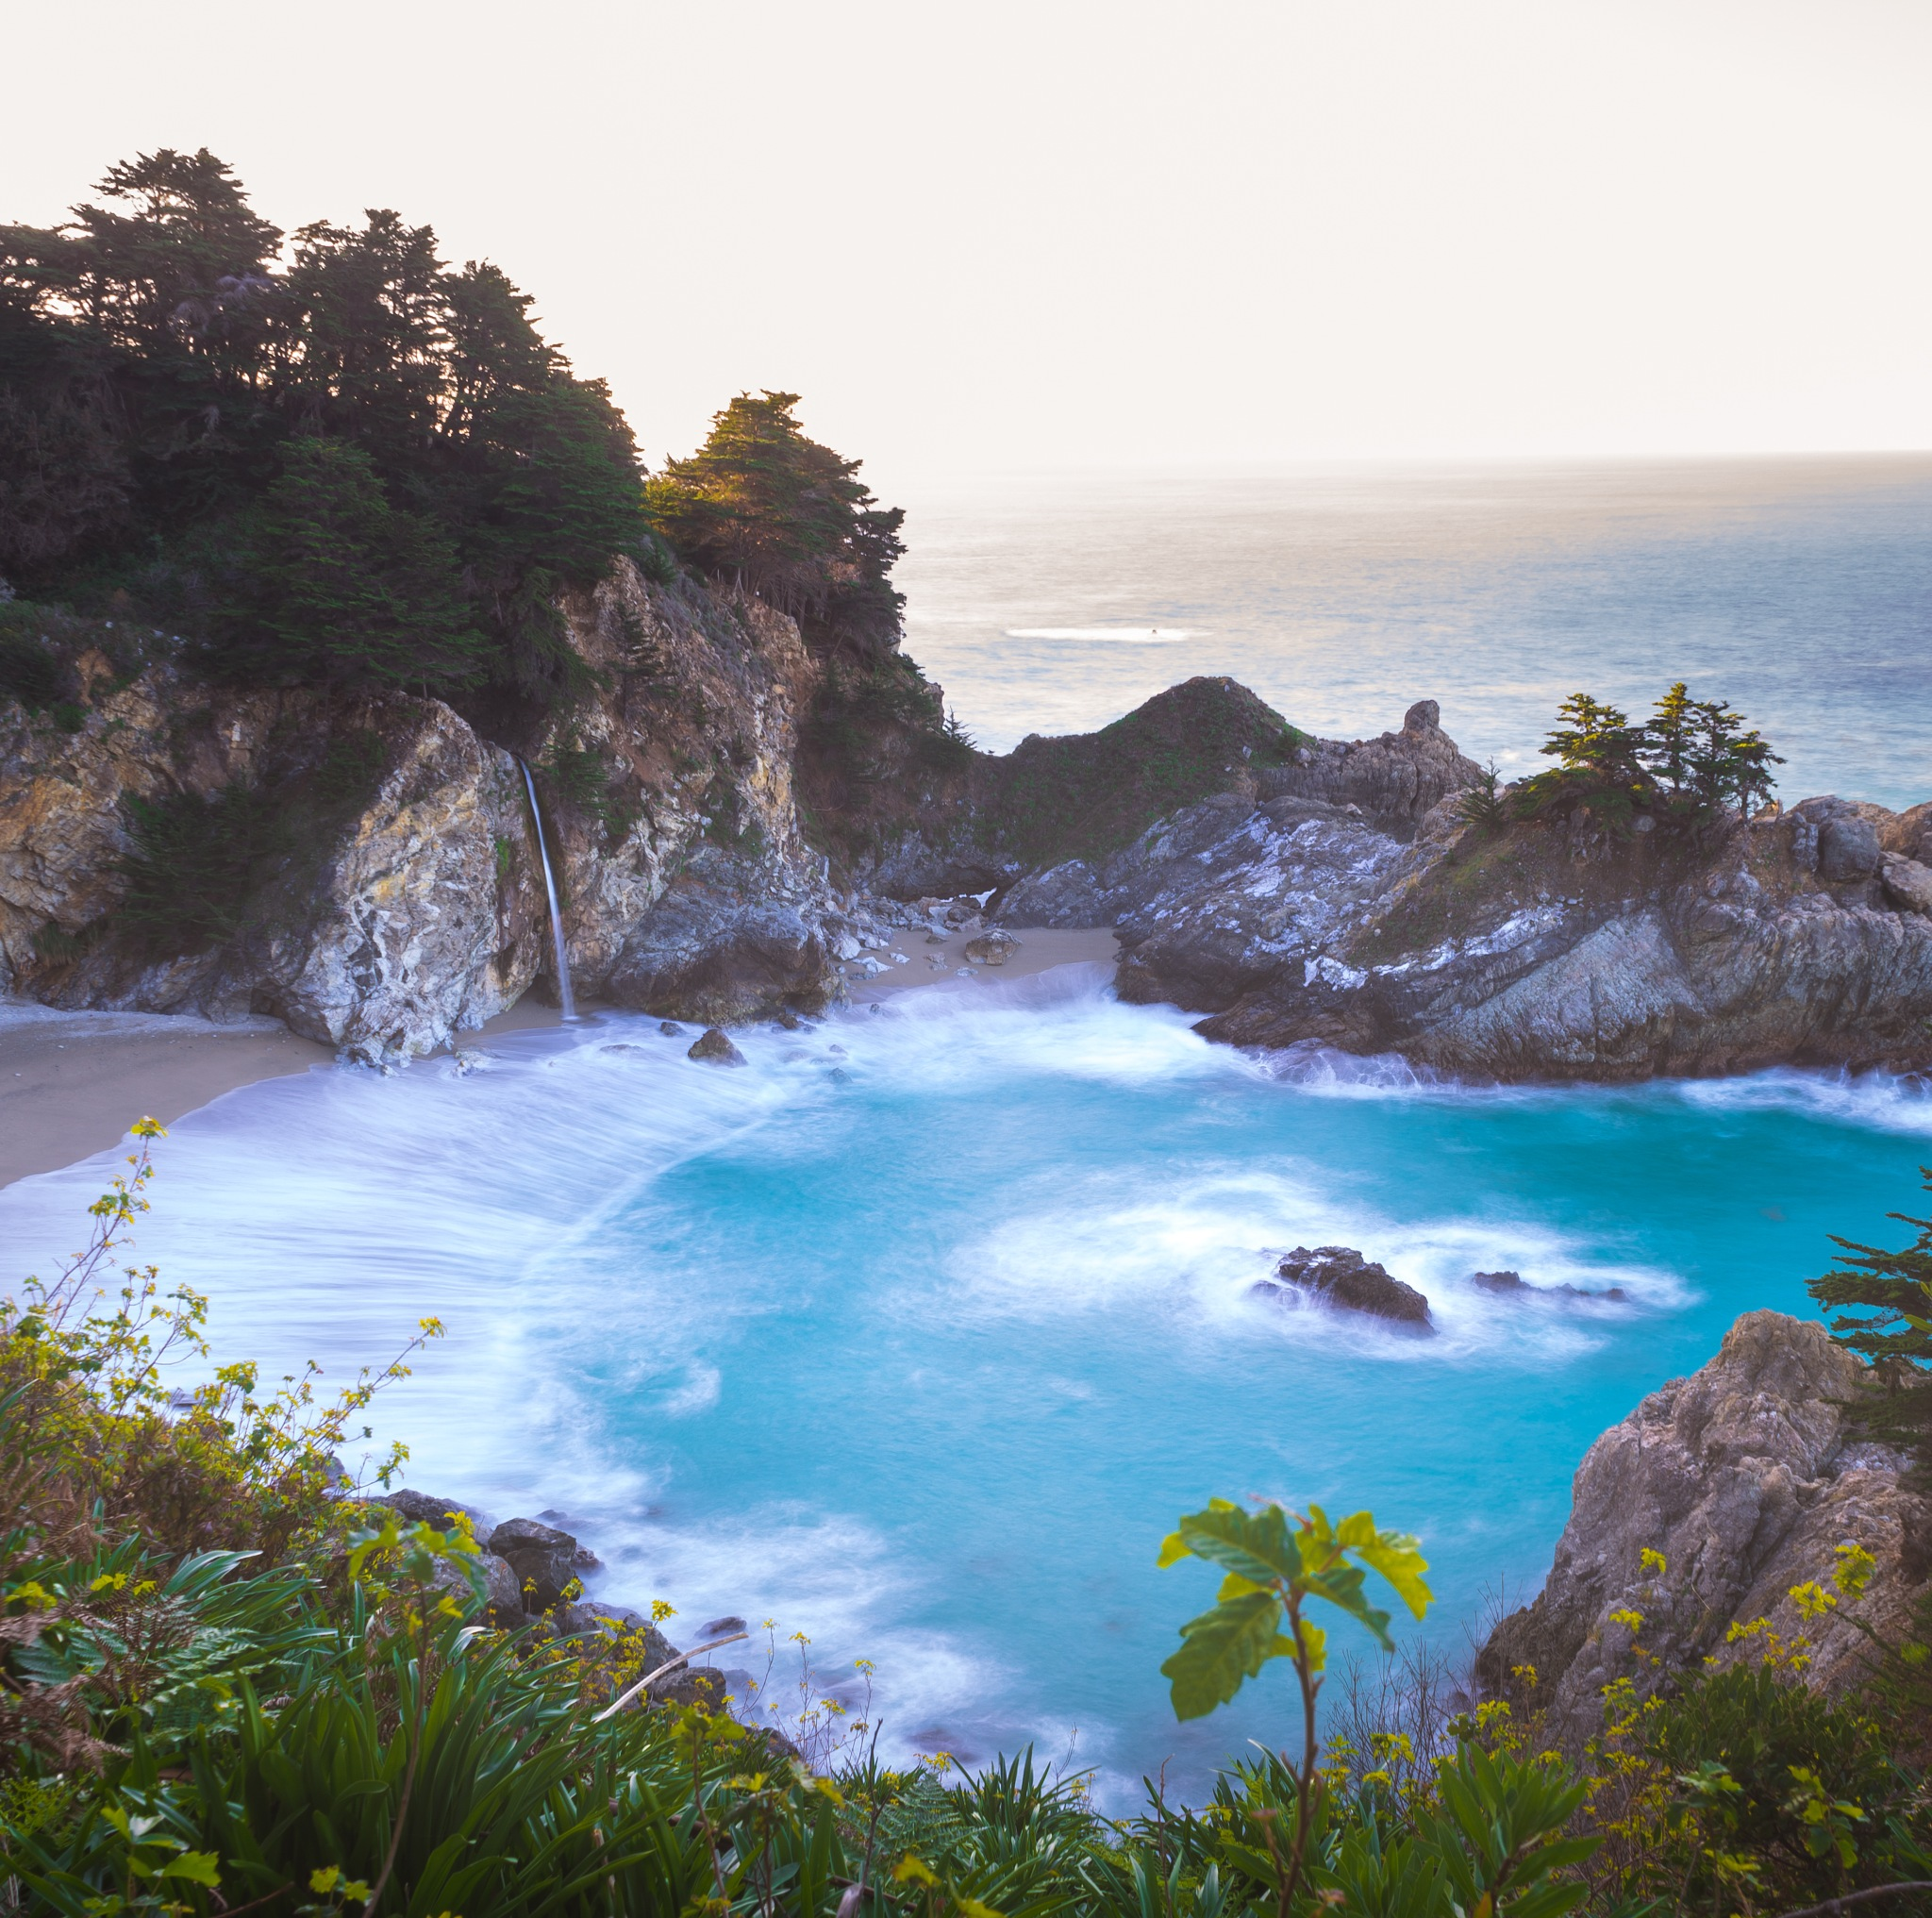 McWay Falls by Jesspher Mesia